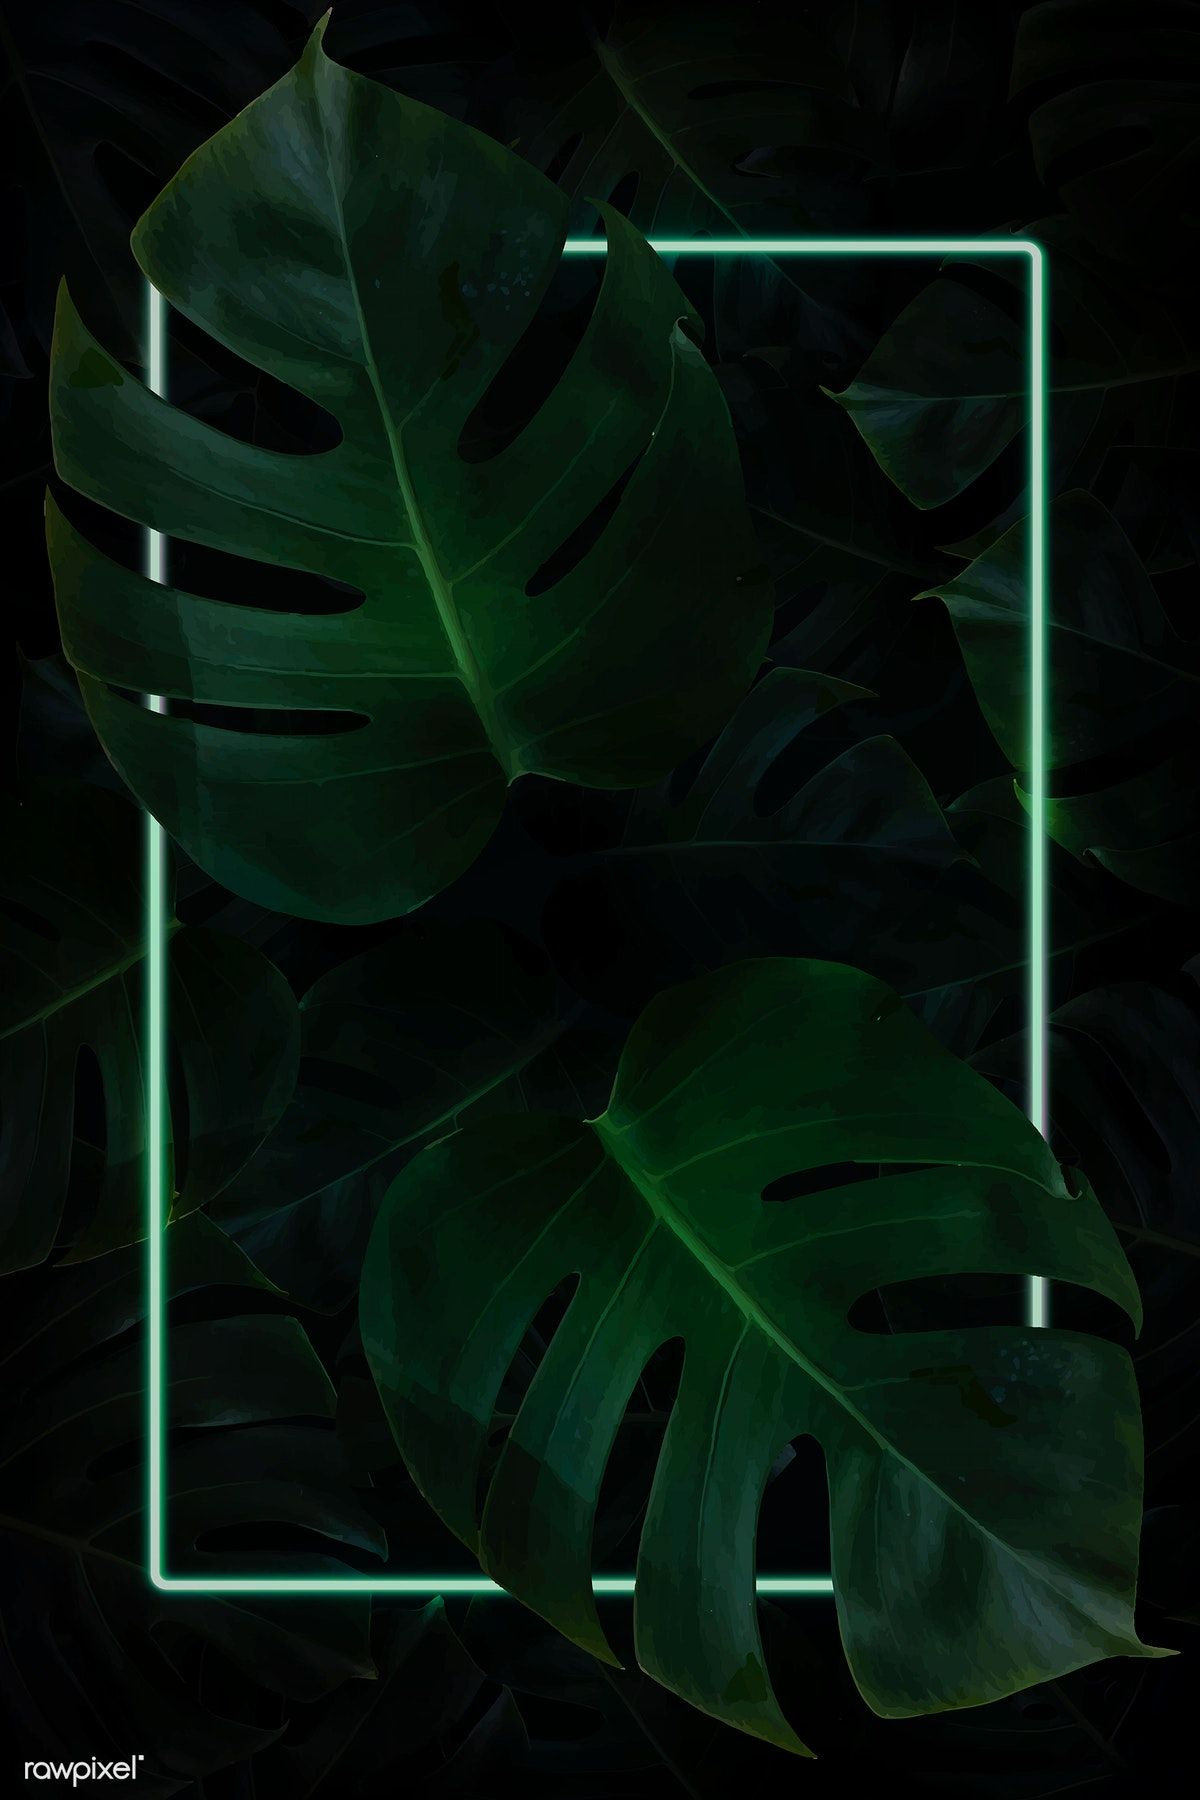 Rectangle Green Neon Frame On Tropical Leaf Background Vector 4k Iphone And Mobile Phone Wallpaper Flower Background Wallpaper Leaf Background Neon Wallpaper